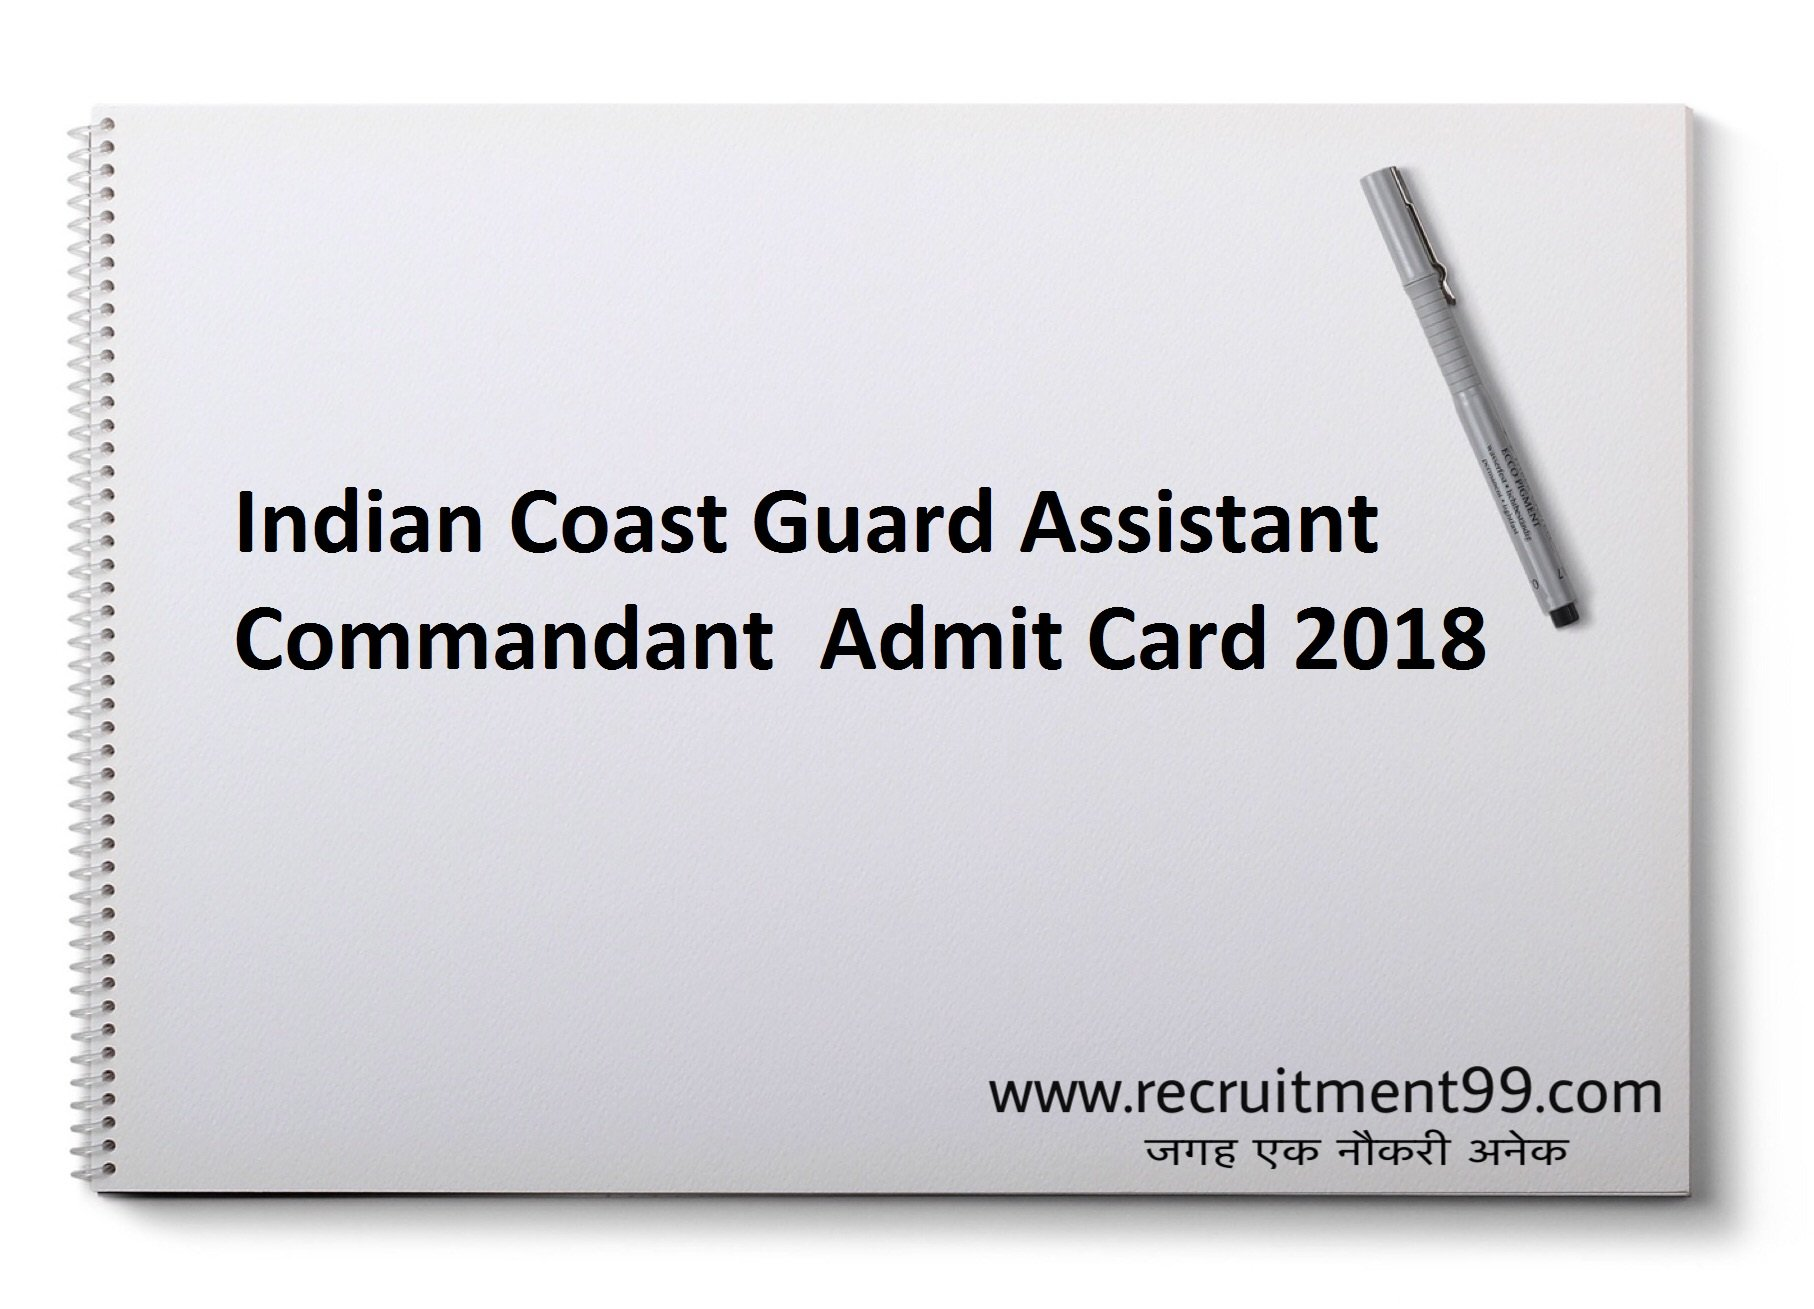 Indian Coast Guard Assistant Commandant Recruitment Admit Card Result 2018